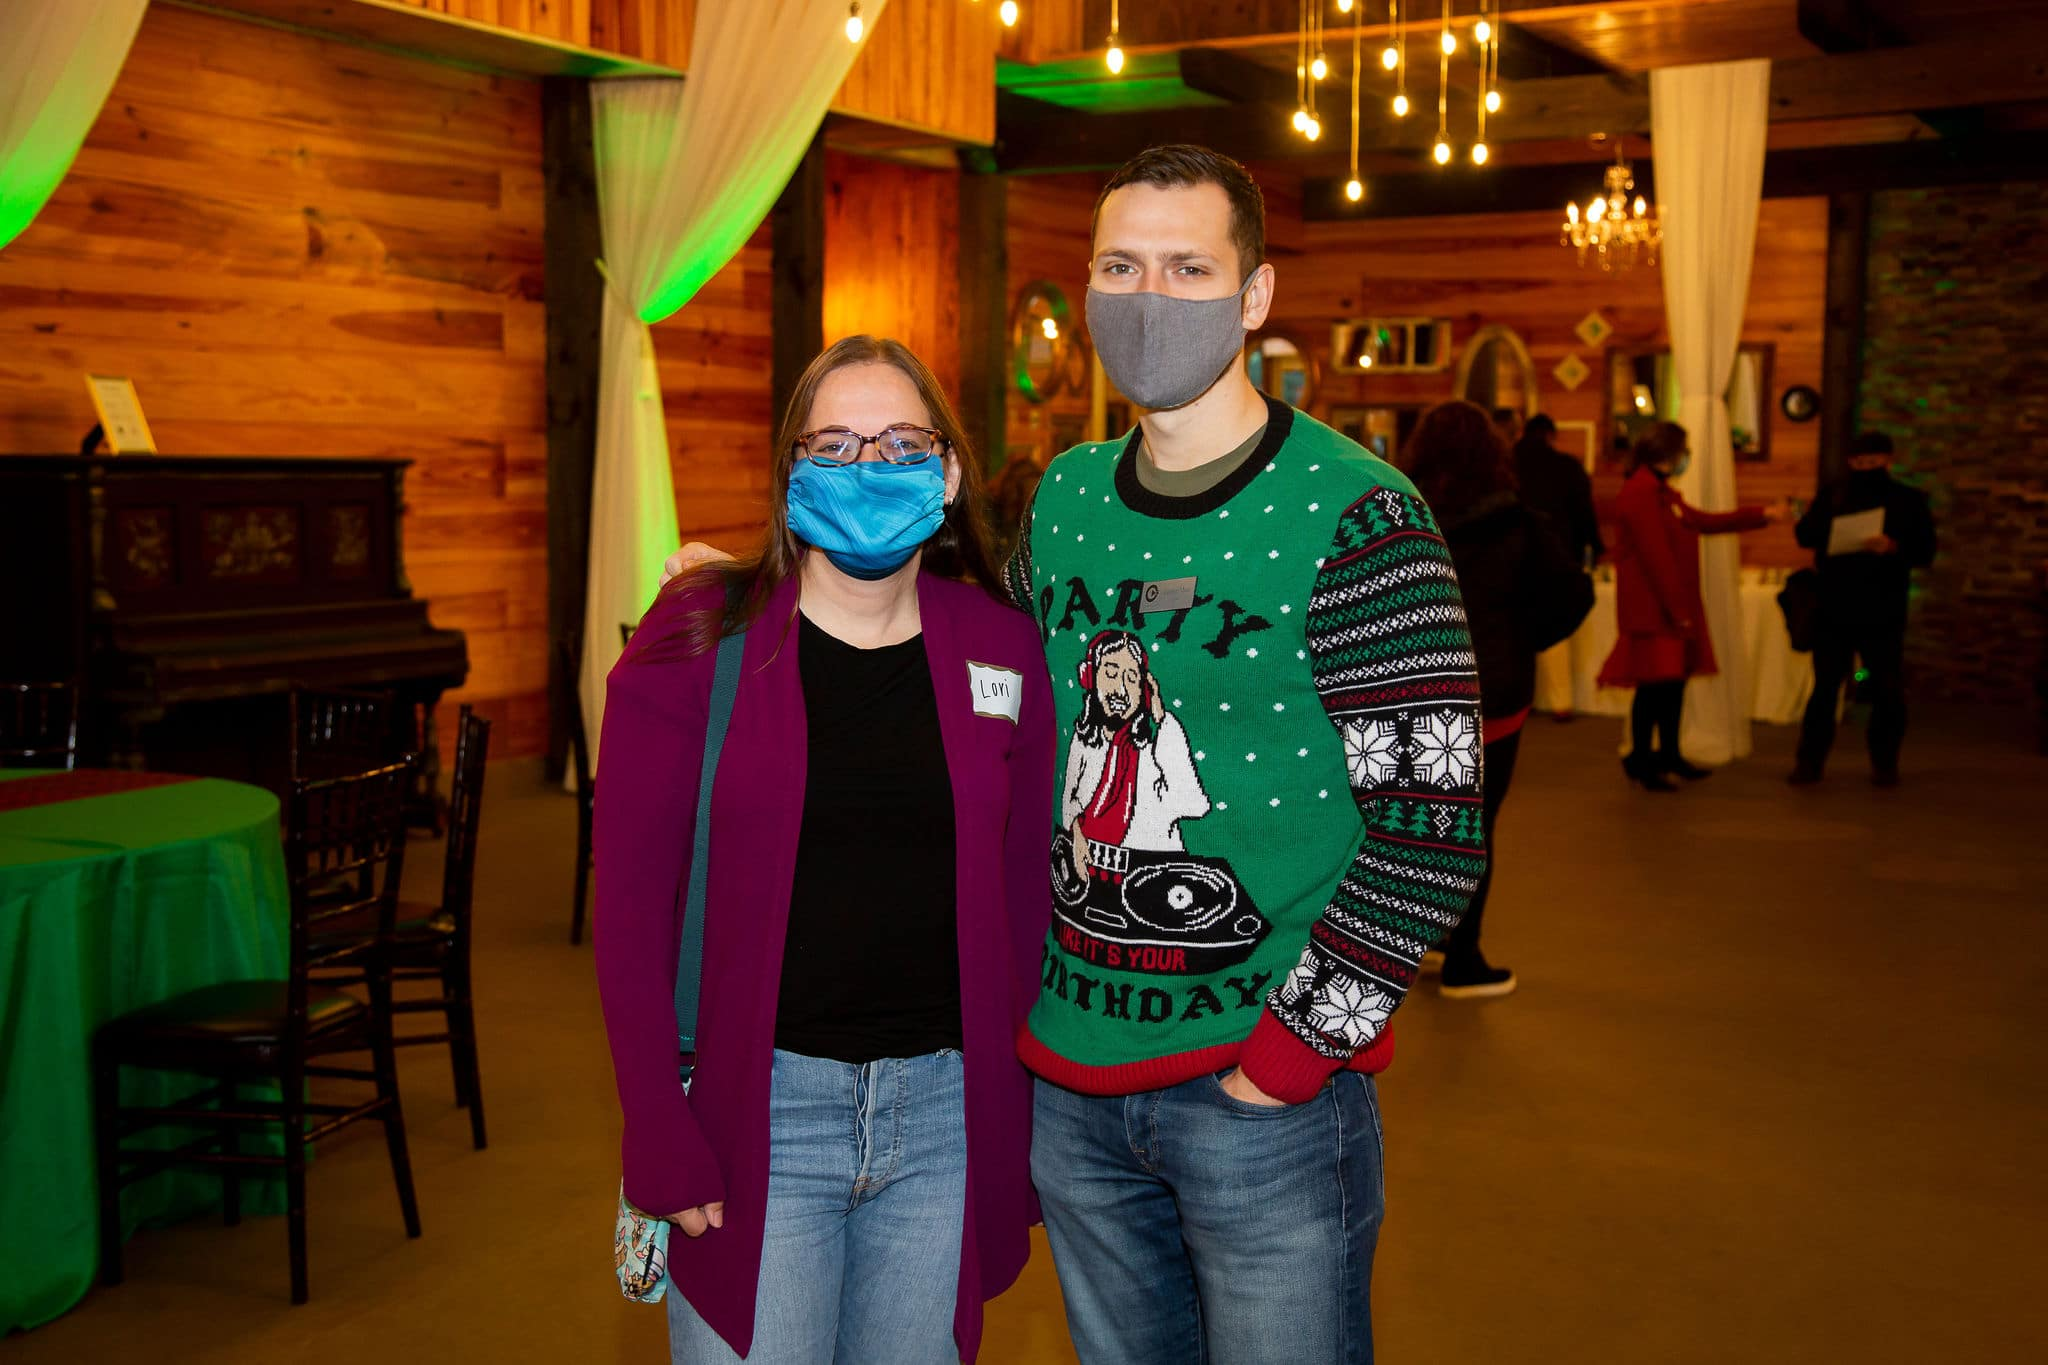 man wearing dj christmas sweater and grey mask stands next to woman wearing black shirt and purple coat with blue mask on